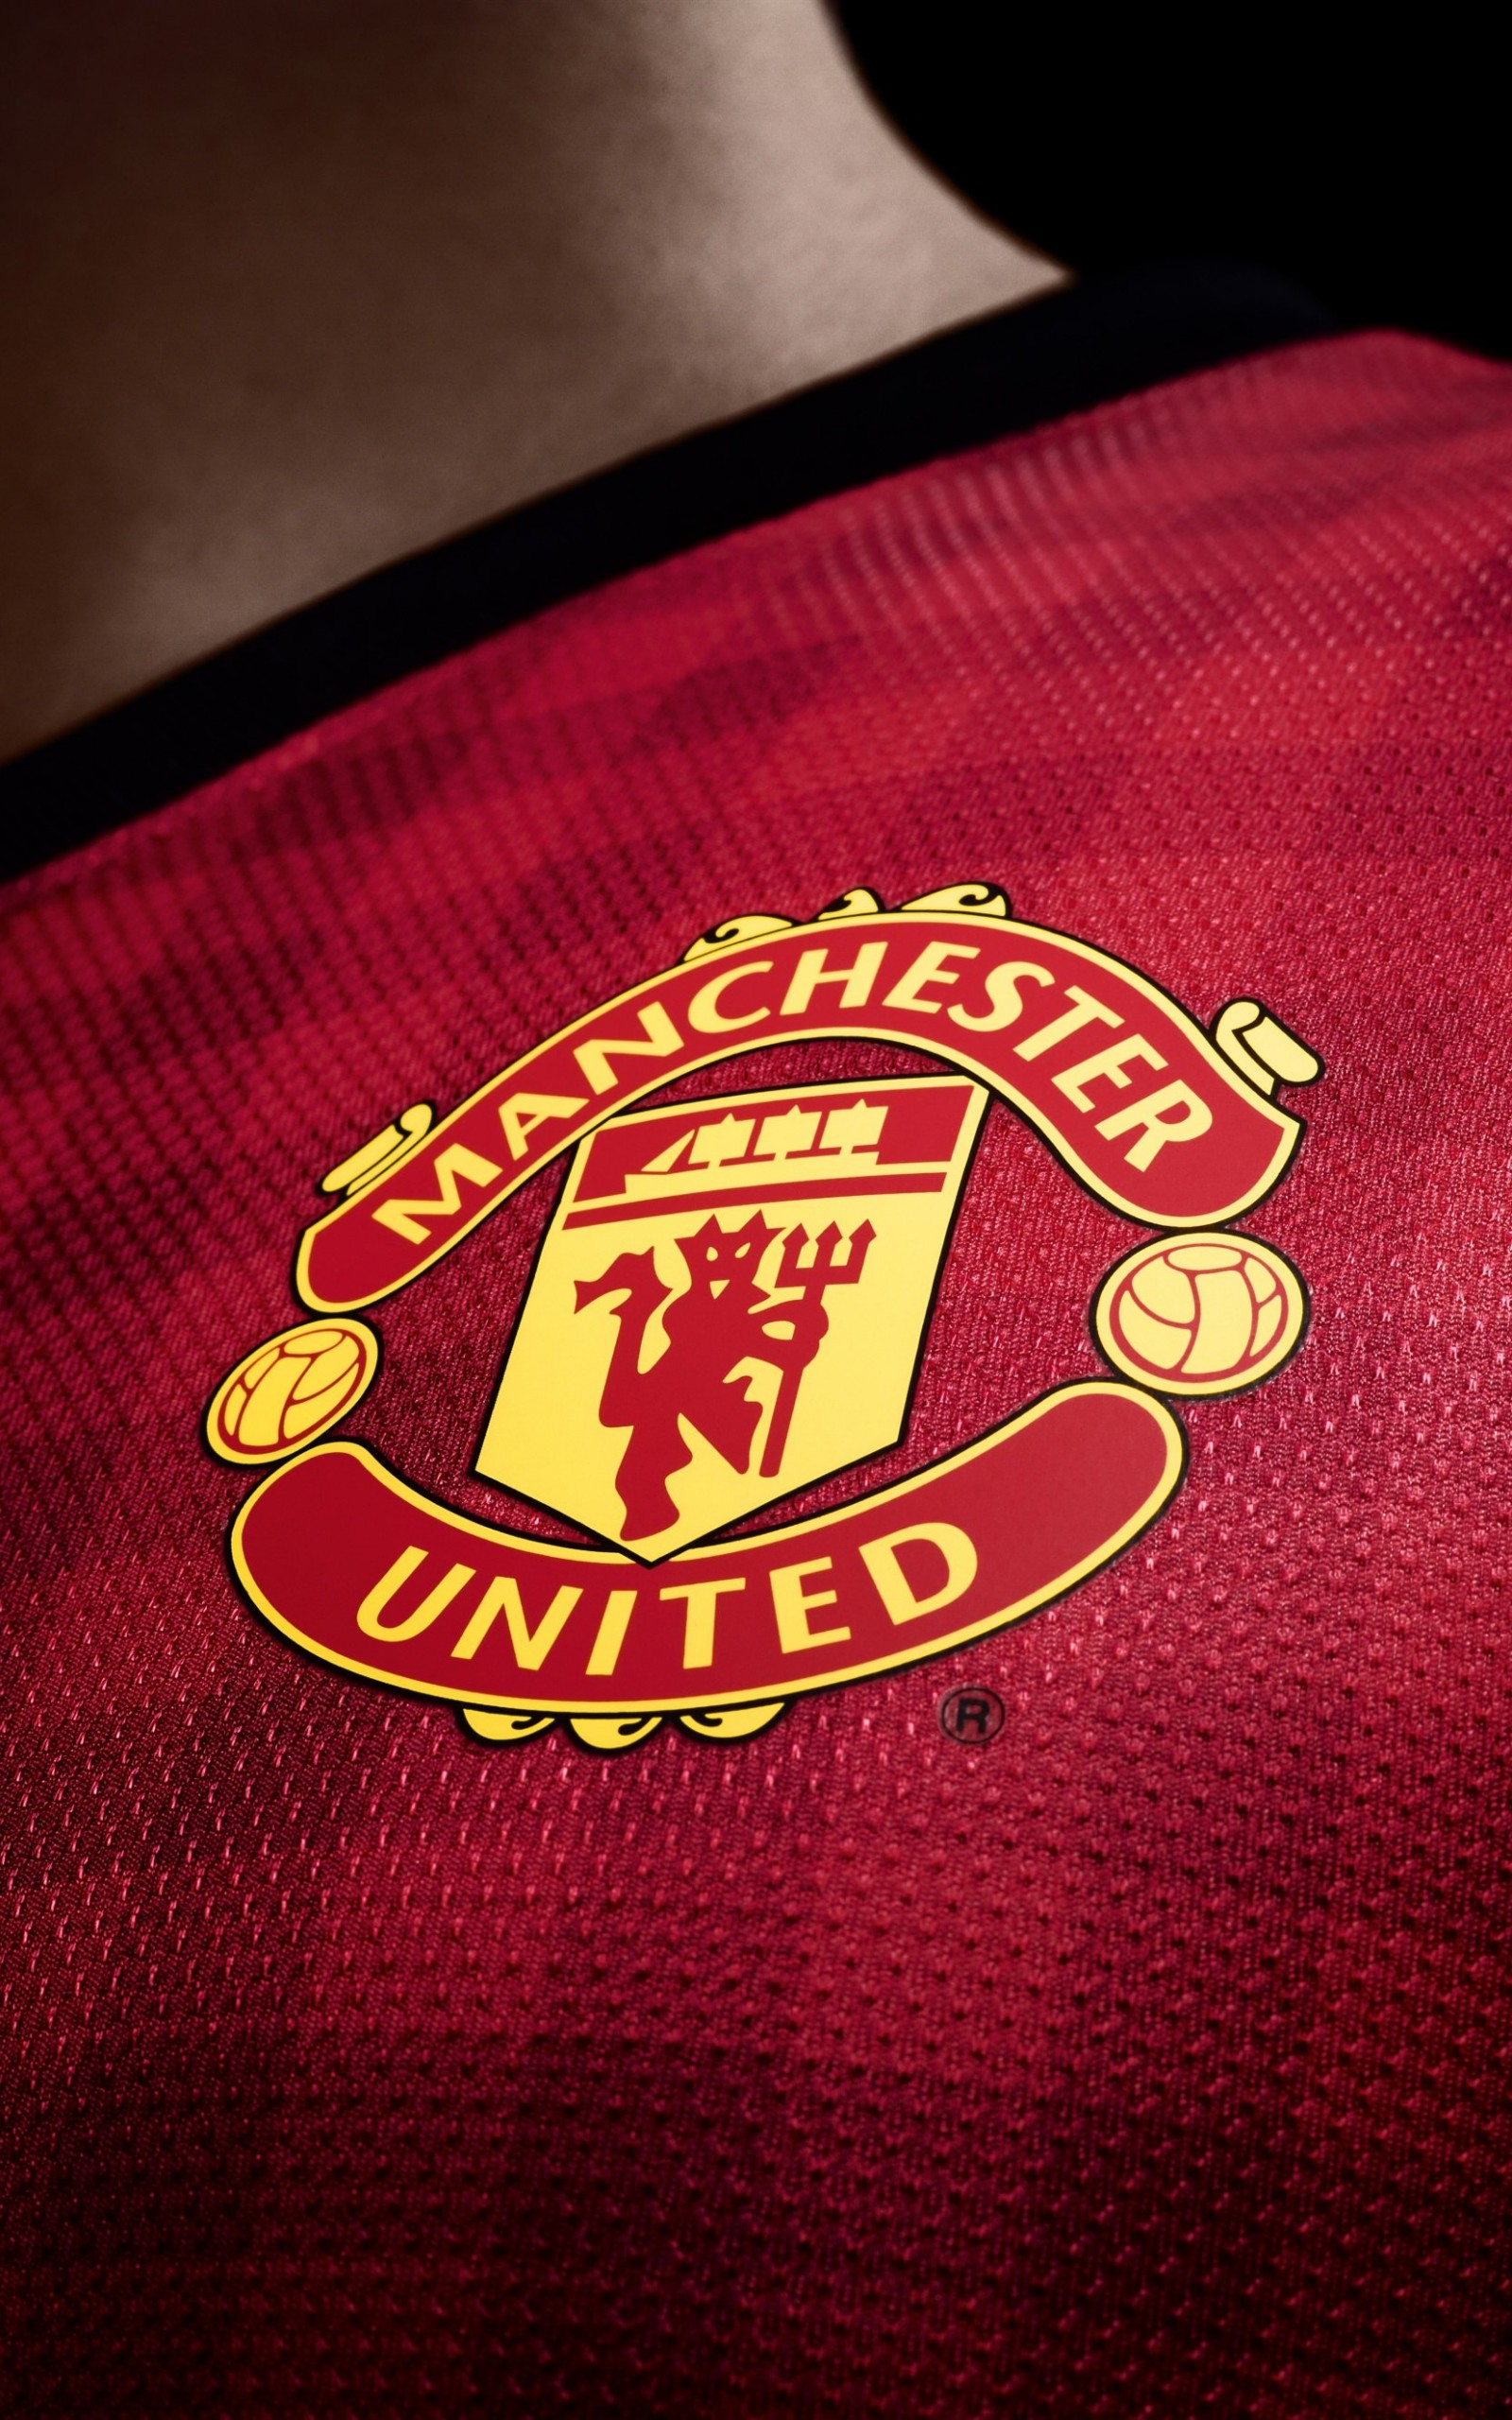 Manchester United Logo Shirt Wallpaper for Amazon Kindle Fire HDX 8.9